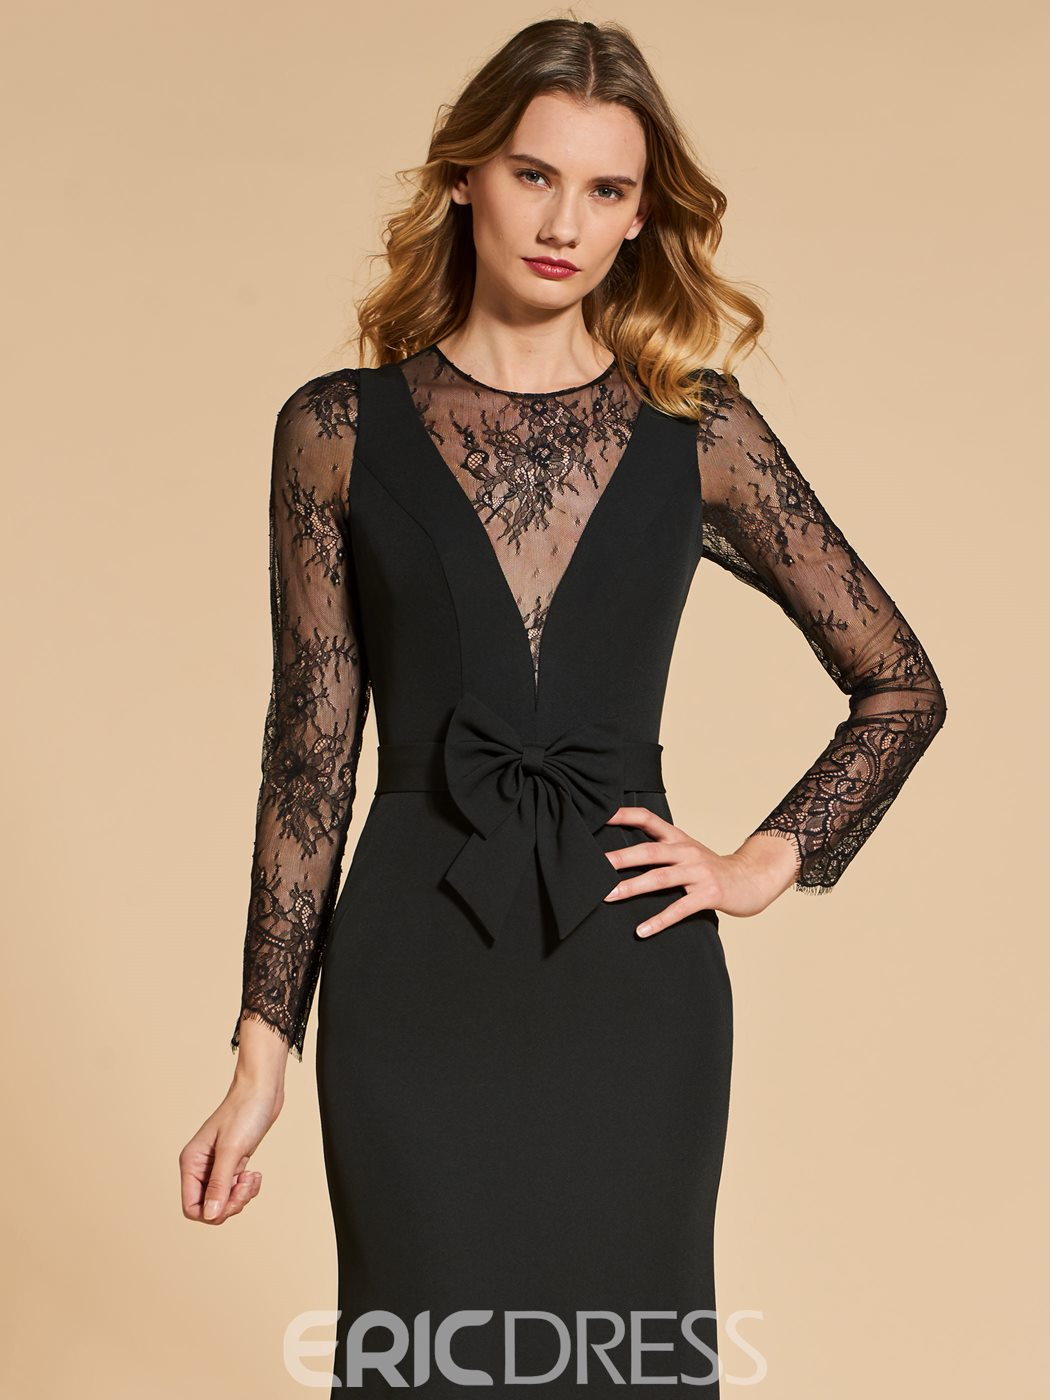 Ericdress Long Sleeve Lace Sheath Evening Dress With Bowknot